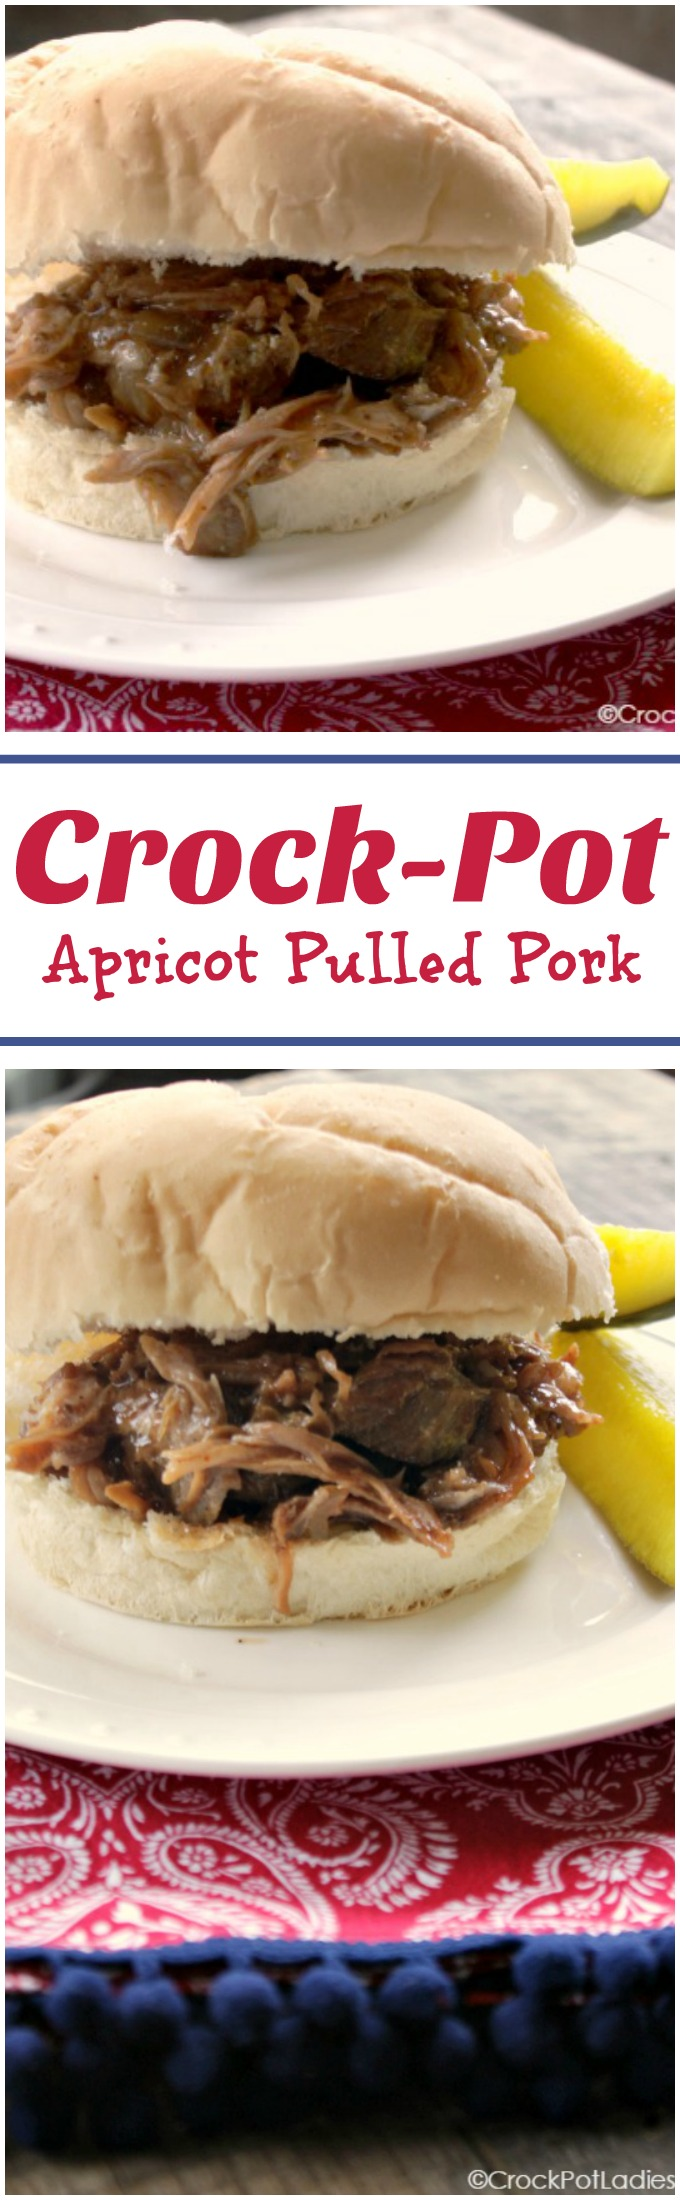 With just 5 simple ingredients this recipe for Crock-Pot Apricot Pulled Pork is a family favorite where the fruity apricot flavor really shines through with both apricot fruit spread and dried apricots added to the pot! #CrockPot #SlowCooker #Recipe #Pork #PulledPork #Easy #GlutenFree #LowCarb #LowSugar #5IngredientsOrLess #CrockPotLadies